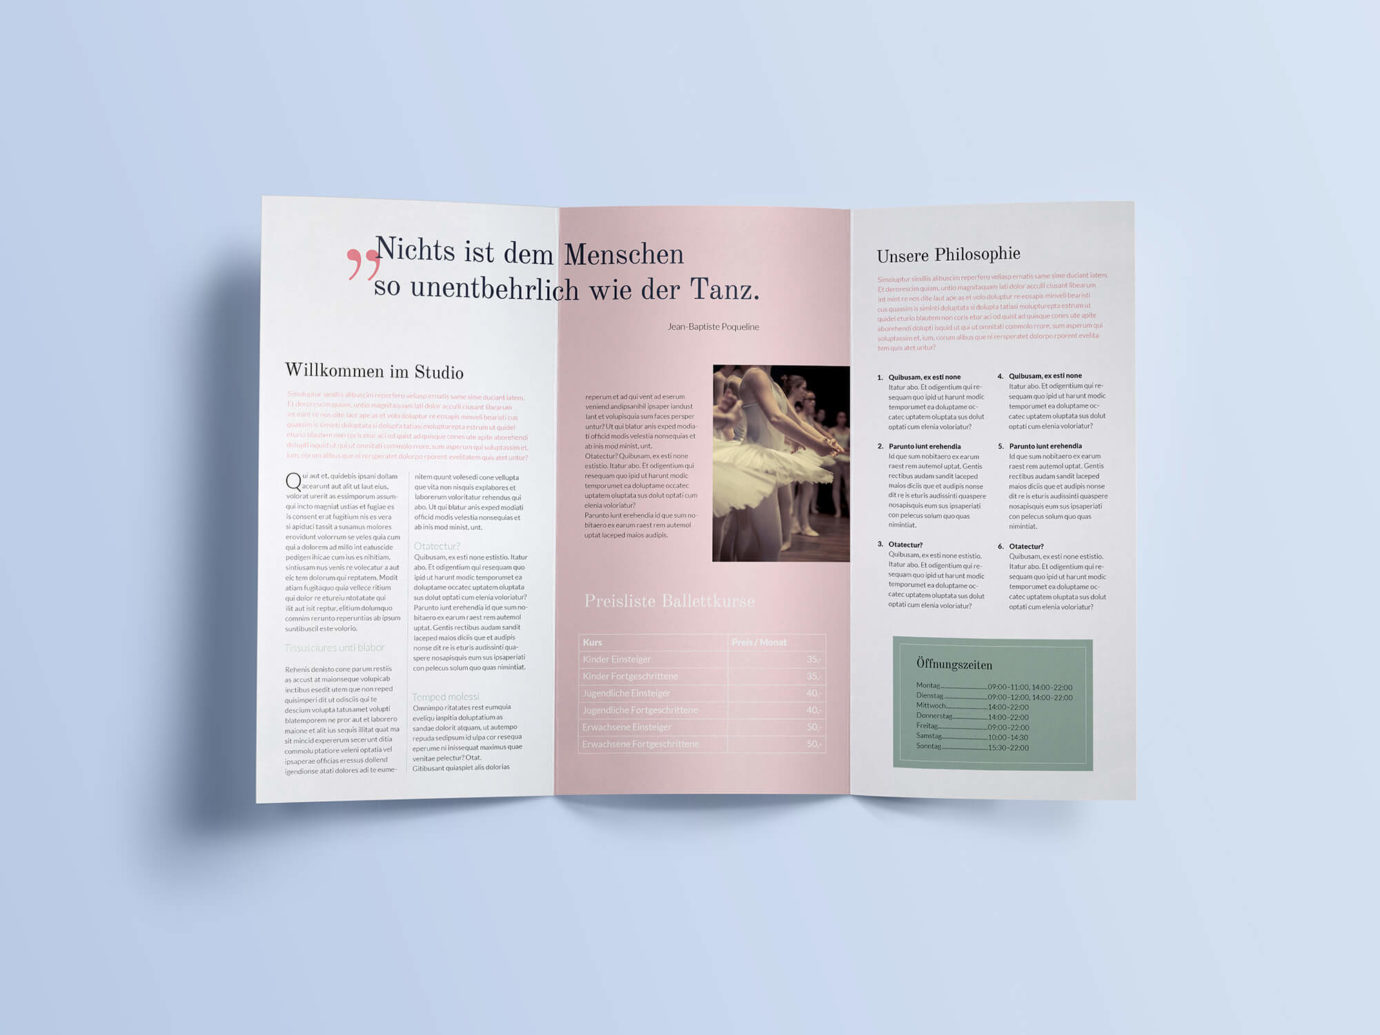 InDesign-Motiv von Lilian Haetinger